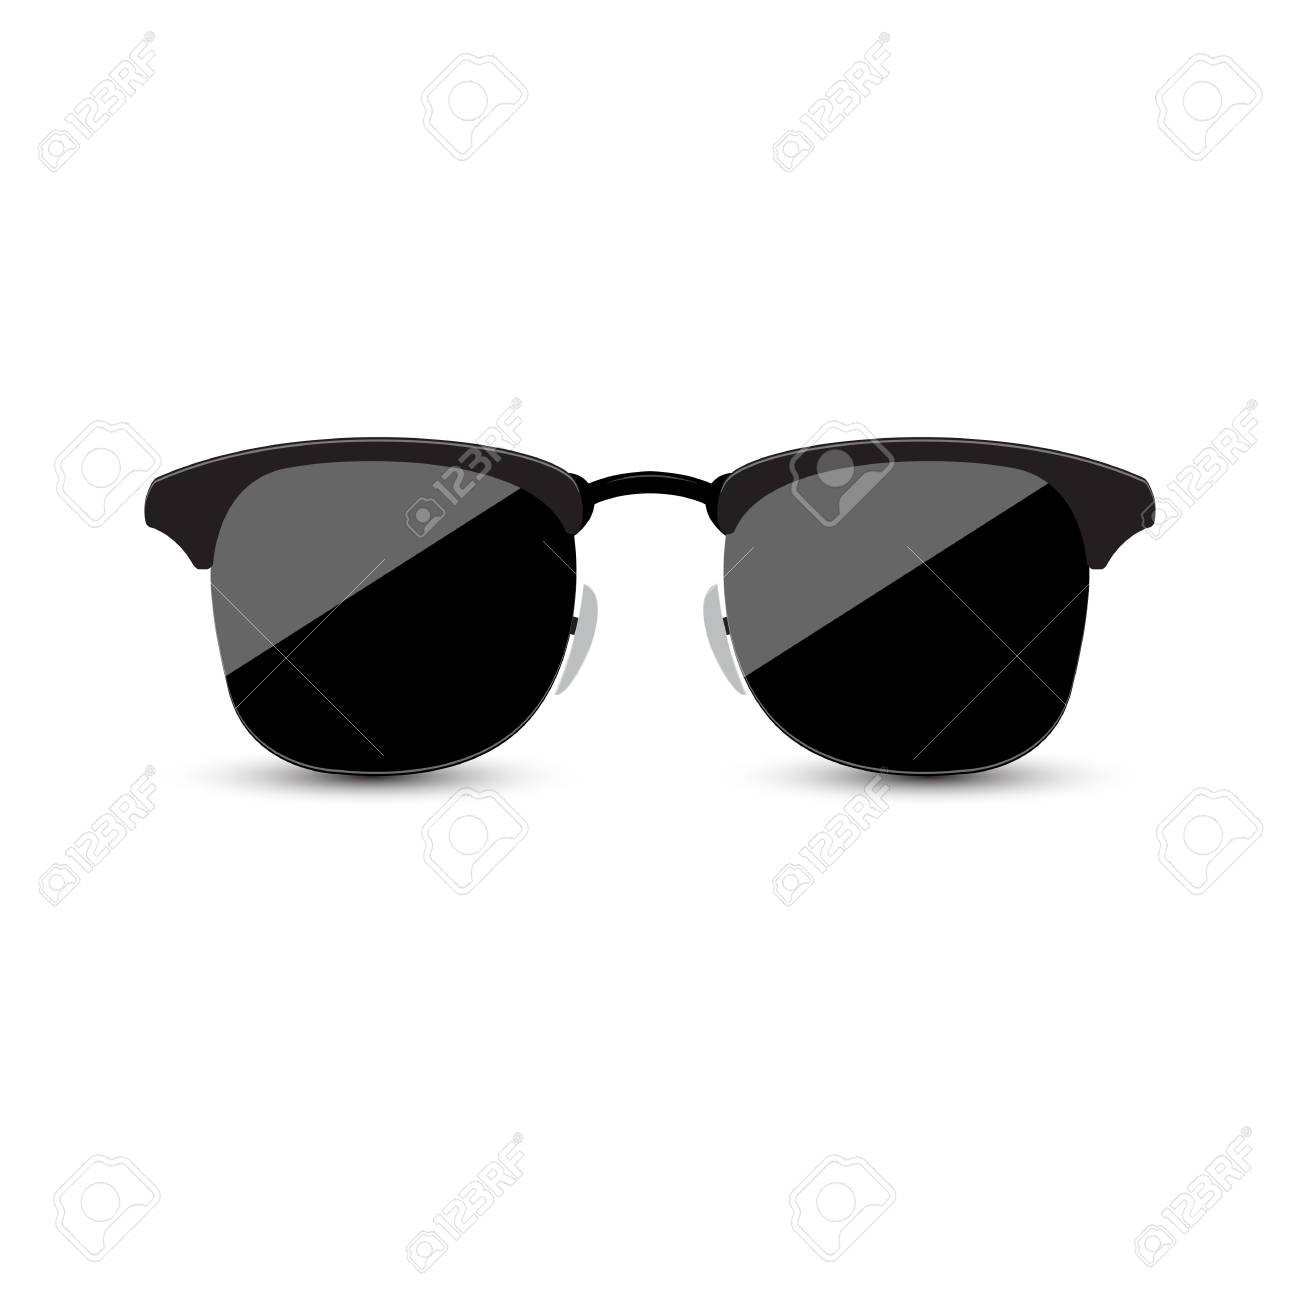 0222d5e14bd74e Black hipster sunglasses with dark glass on a white background Stock Vector  - 83005543